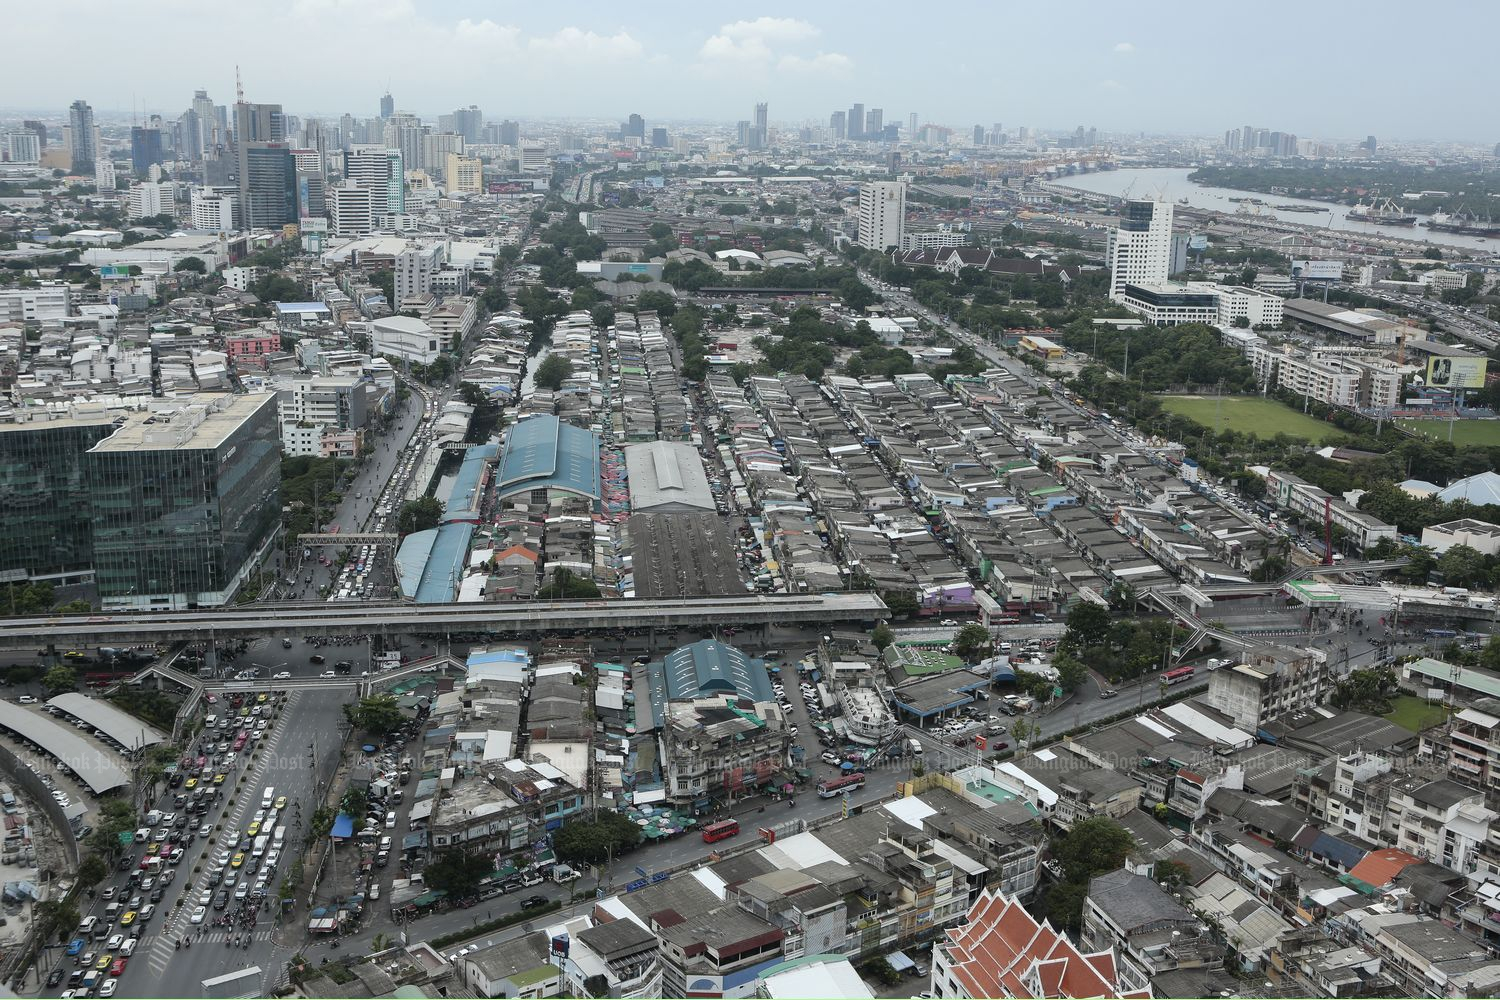 A view of Klong Toey market in Bangkok in August. (Photo by Patipat Janthong)